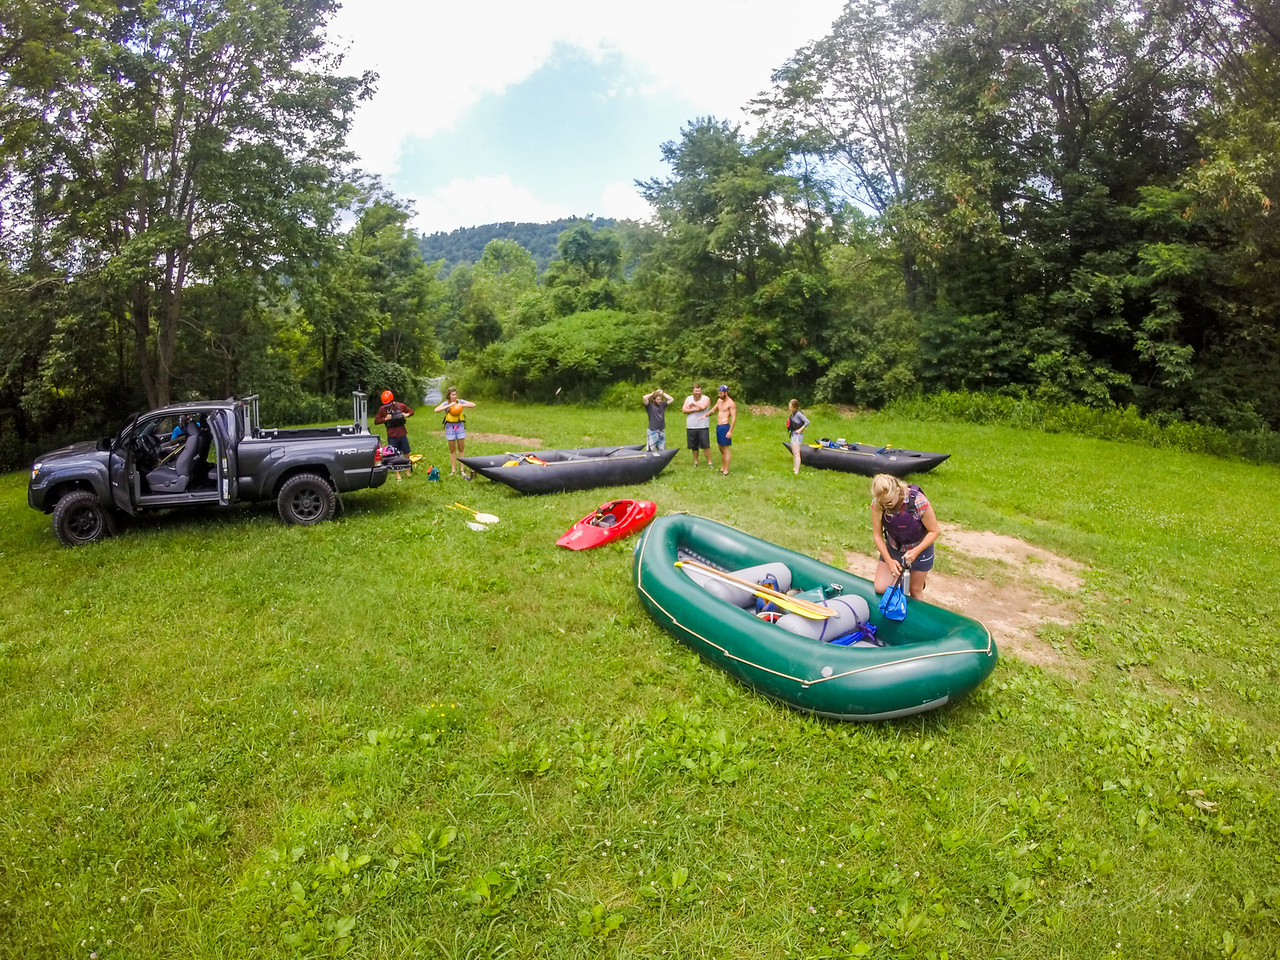 Cheat; Canyon; Rafting; Albright; Gabe; DeWitt; Appalachia; Boating; Cheat Canyon; Cheat River; Friends; Get outside; Go play; Summer; WV; West Virginia; White Water; adventure; adventure sports; water DCIM\100GOPRO